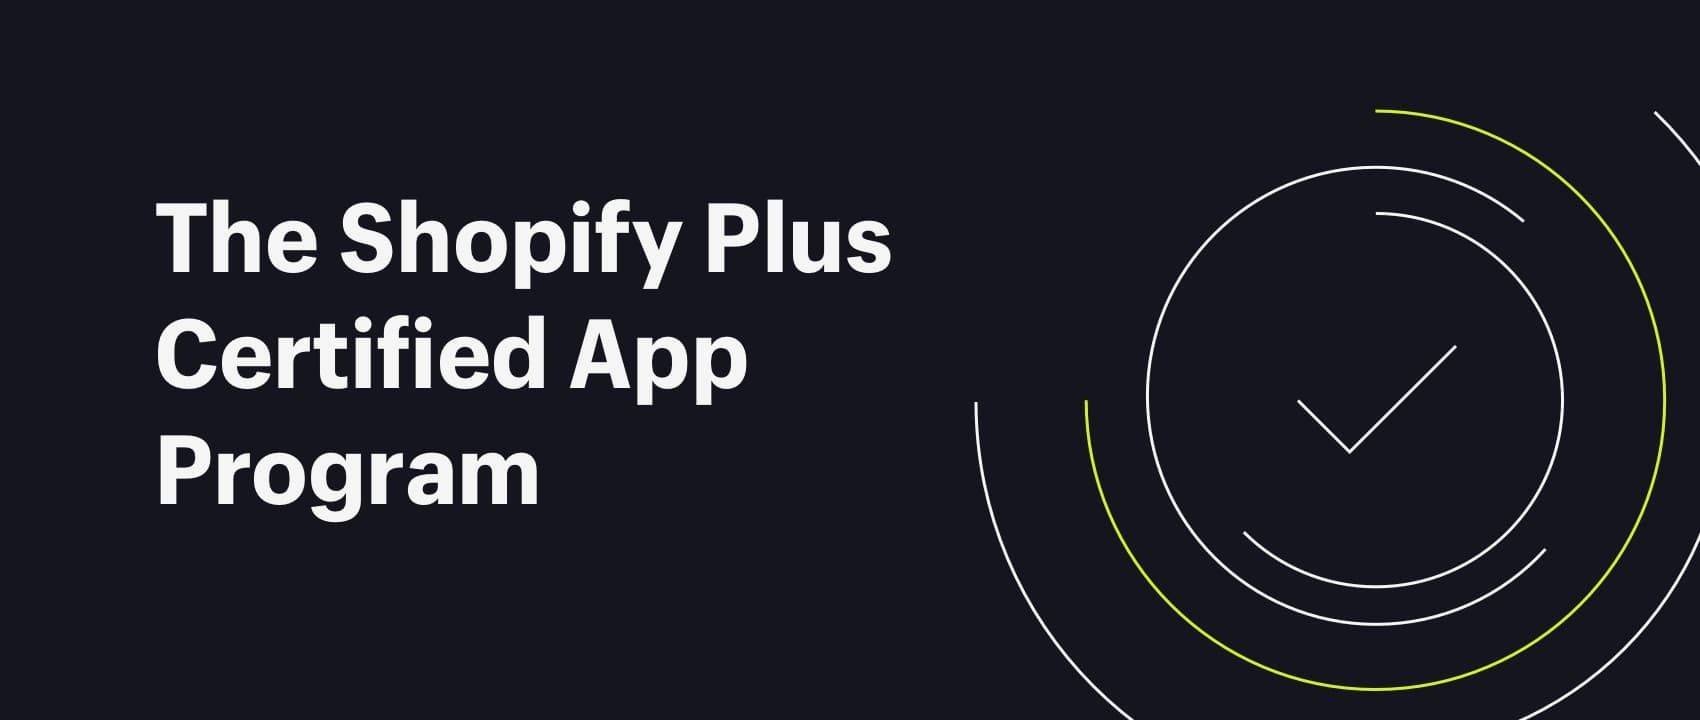 Katana Joins the Shopify Plus Certified Partner App Program